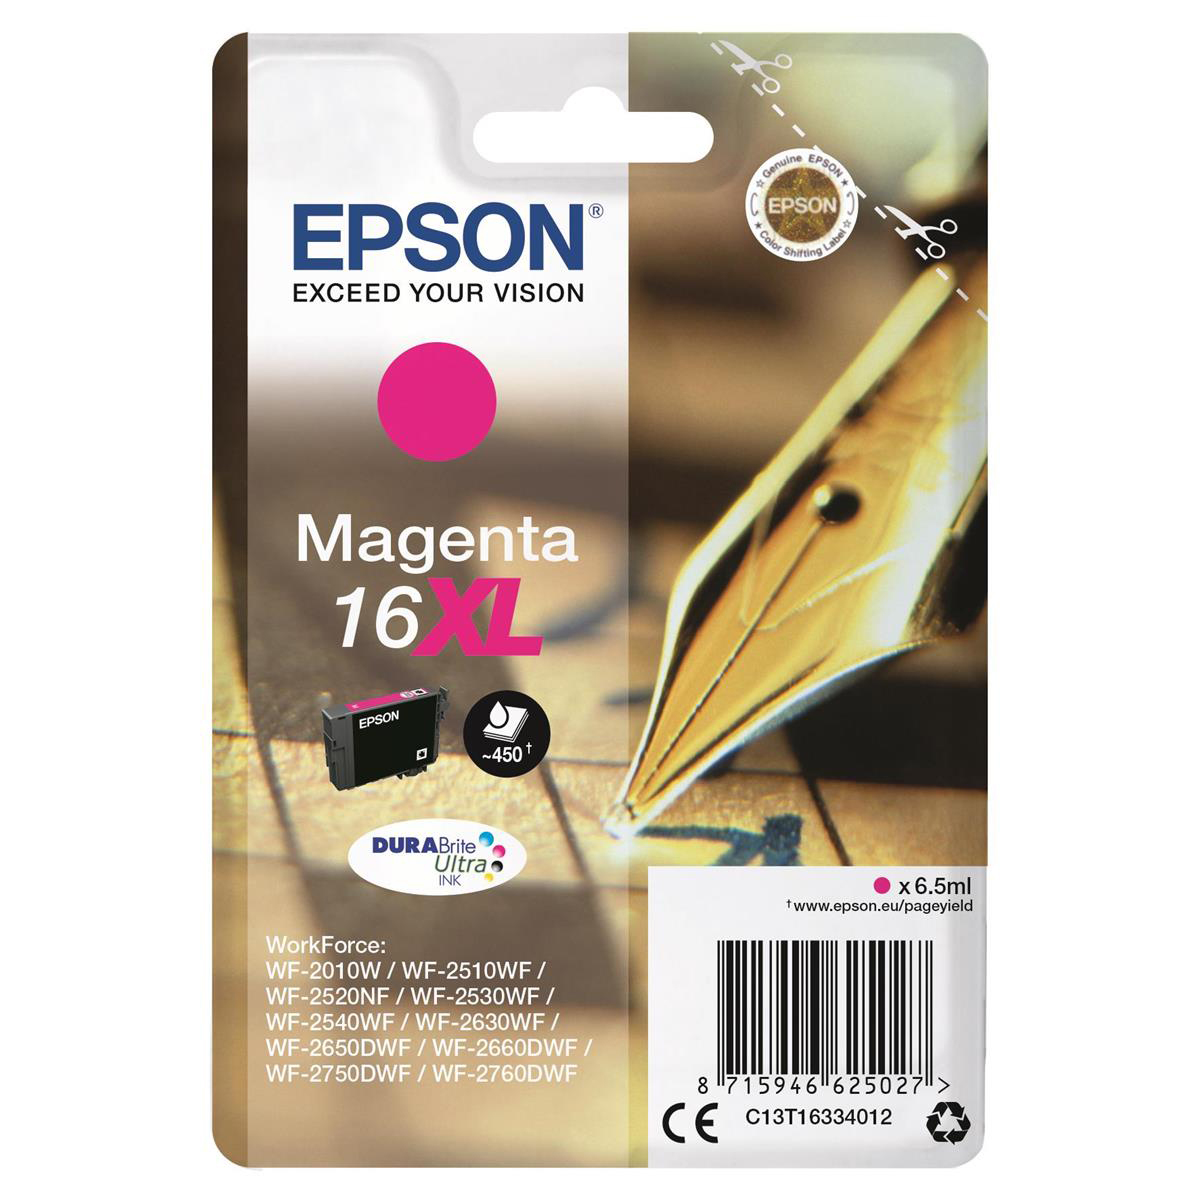 Epson 16XL Inkjet Cartridge Pen & Crossword High Yield Page Life 450pp 6.5ml Magenta Ref C13T16334012